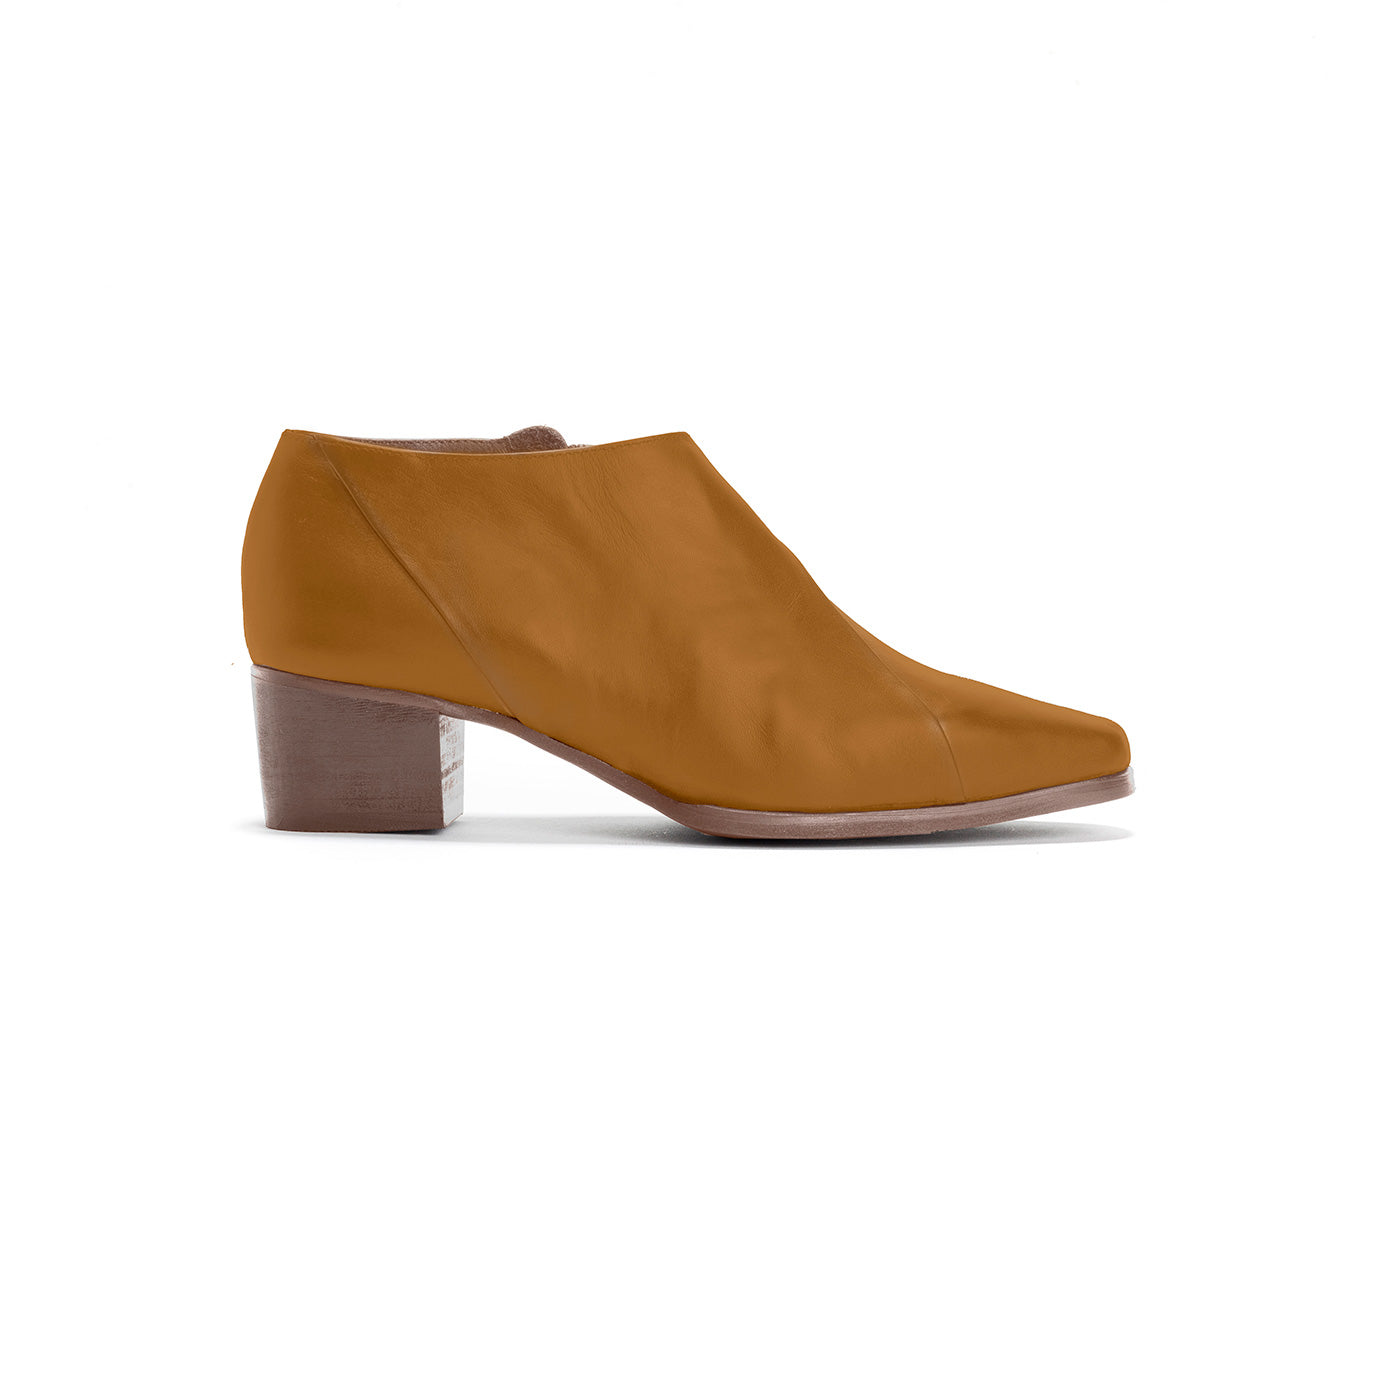 Nadia - Caramel Leather Ankle Boots